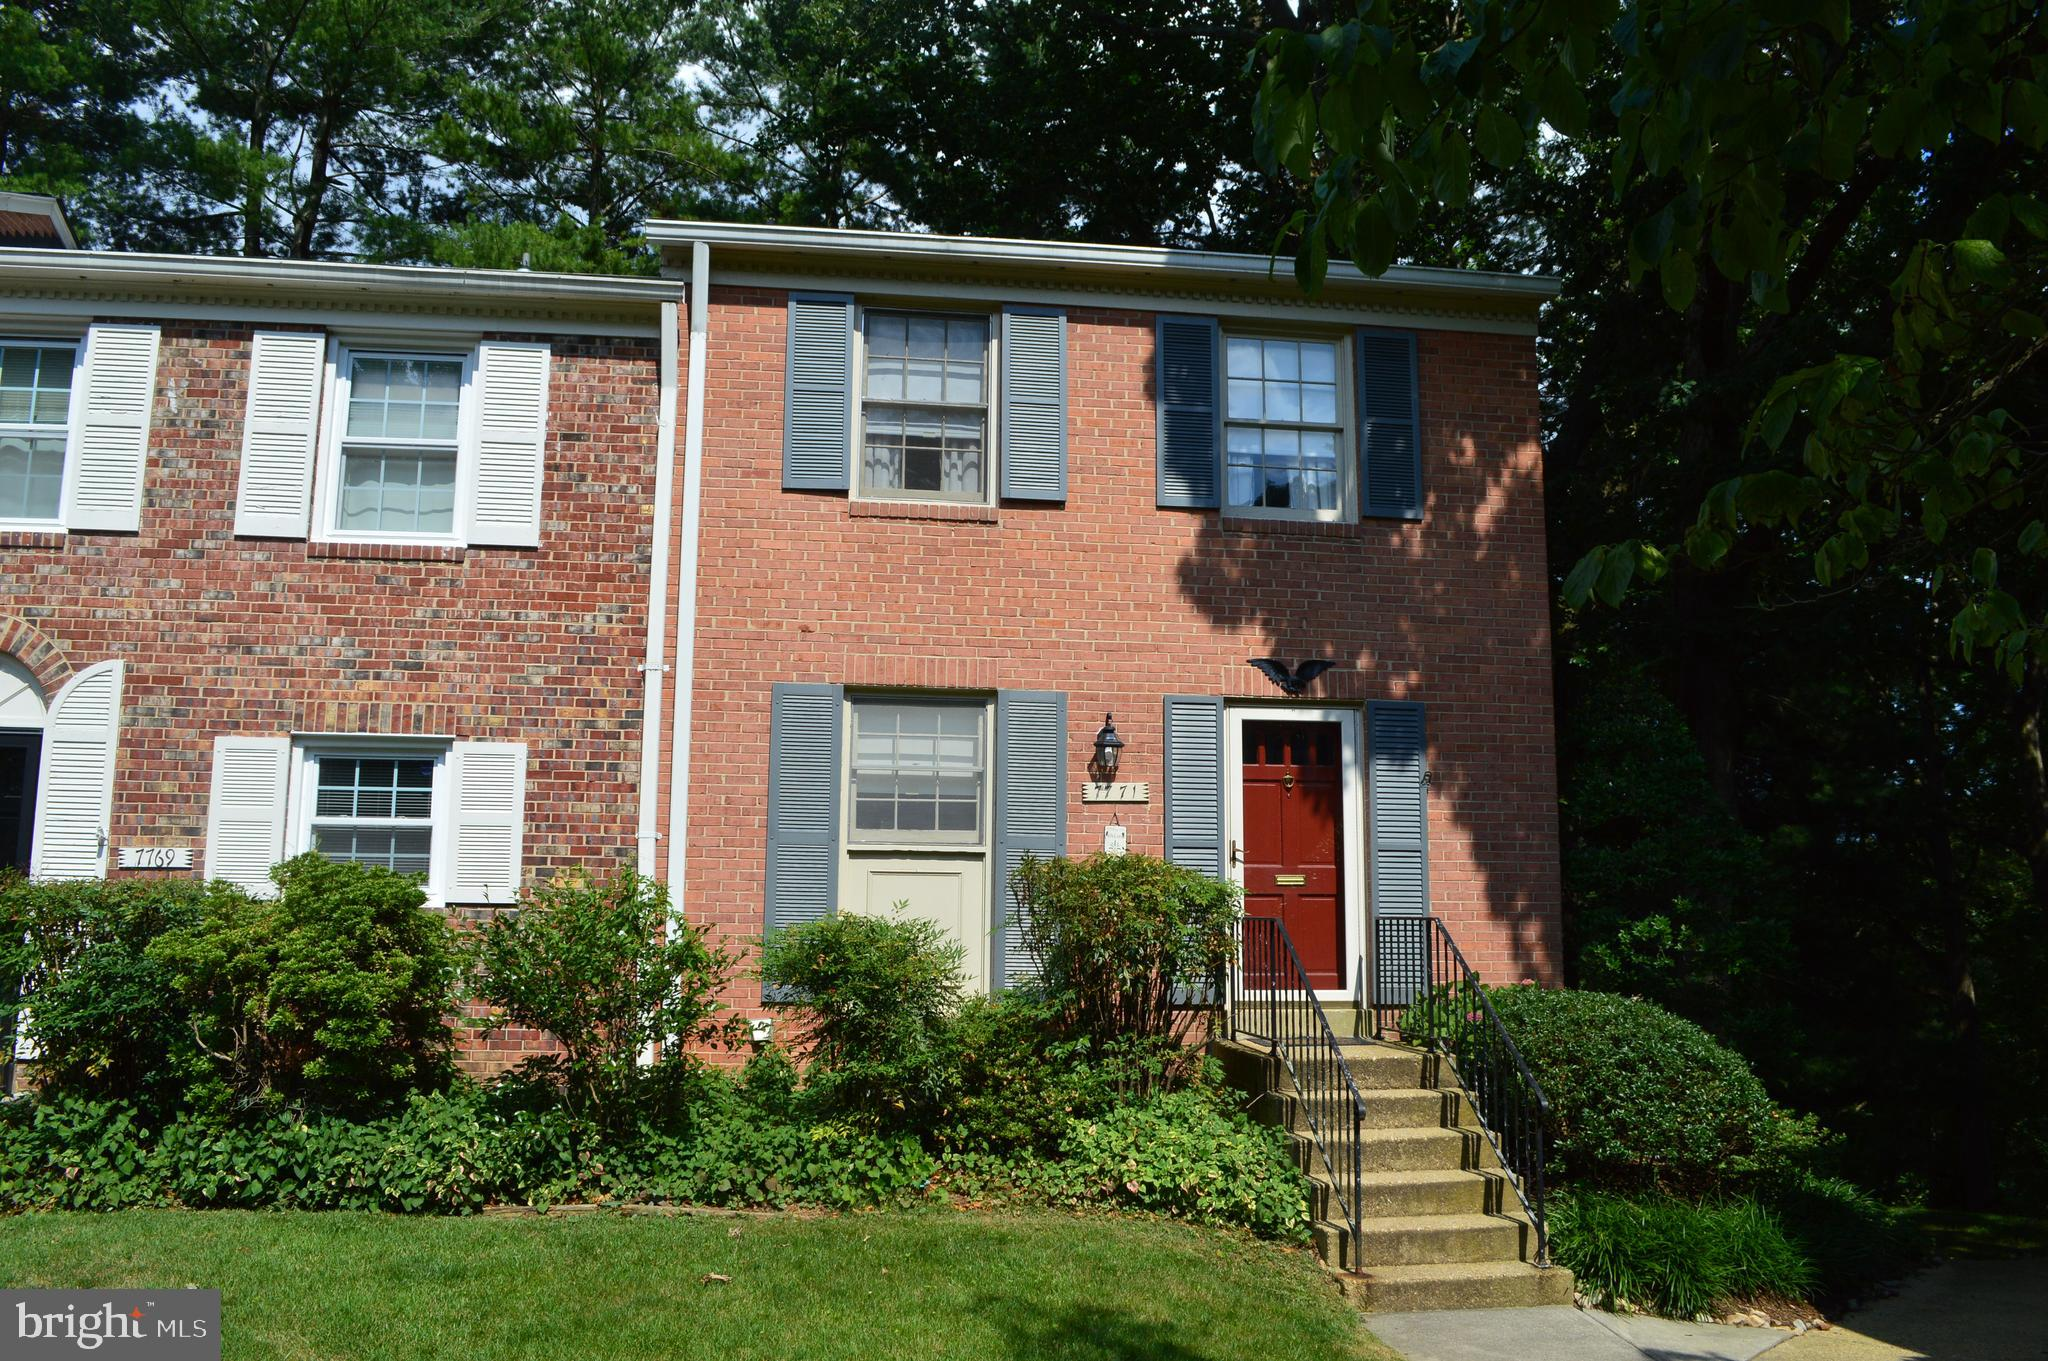 Classic almost all brick, 3-bedroom, 3 full bath end unit townhouse. Table space kitchen with large pantry closet. All 3 baths updated including the beautiful master with glass tile inlay. Spacious room sizes and generous closet space. Pull down-stairs to partially floored attic for extra storage. Walk-out lower level featuring French doors leading to the brick patio with gardener~s shed and privacy fence. Condo fee includes gas heat, water, sewer, trash and snow removal, community pool (everything but electric) and lots more including exterior maintenance (roof & fence replacement, painting, maintenance of common grounds). One assigned parking space plus 2 additional parking passes. Great bones, but sold ~As Is~. Newer HVAC & water heater. Wonderful, small community in super, close-in location. Close to every major commuter route and minutes from the Franconia/Springfield blue line Metro as well as the Burke or Springfield Virginia Railway Express. An abundance of shopping choices including the Springfield Town Center, Whole Foods, Trader Joe~s, etc.. All in the top-rated Keene Mill ES, Irving MS and West Springfield HS pyramid (Elementary and High Schools have just completed renovations).